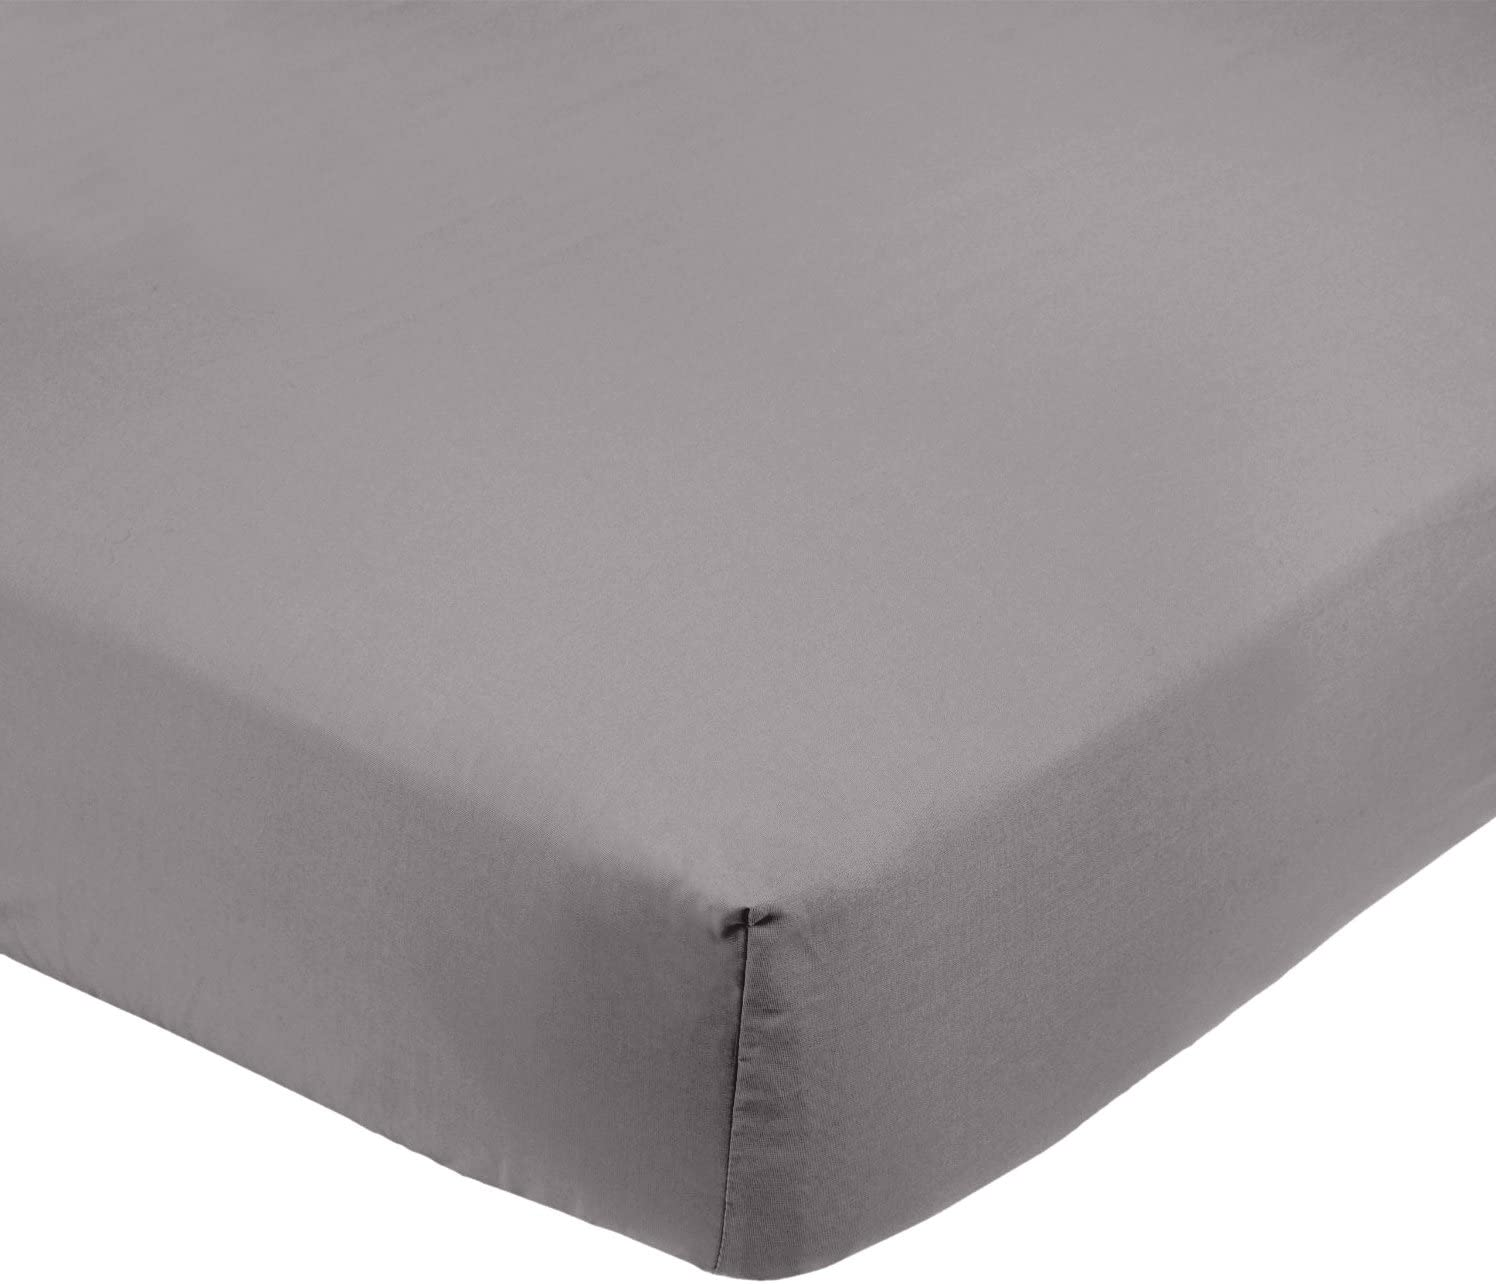 Pack of 2 Microfibre Silentnight Supersoft Quilted Waterproof Pillow Protector White